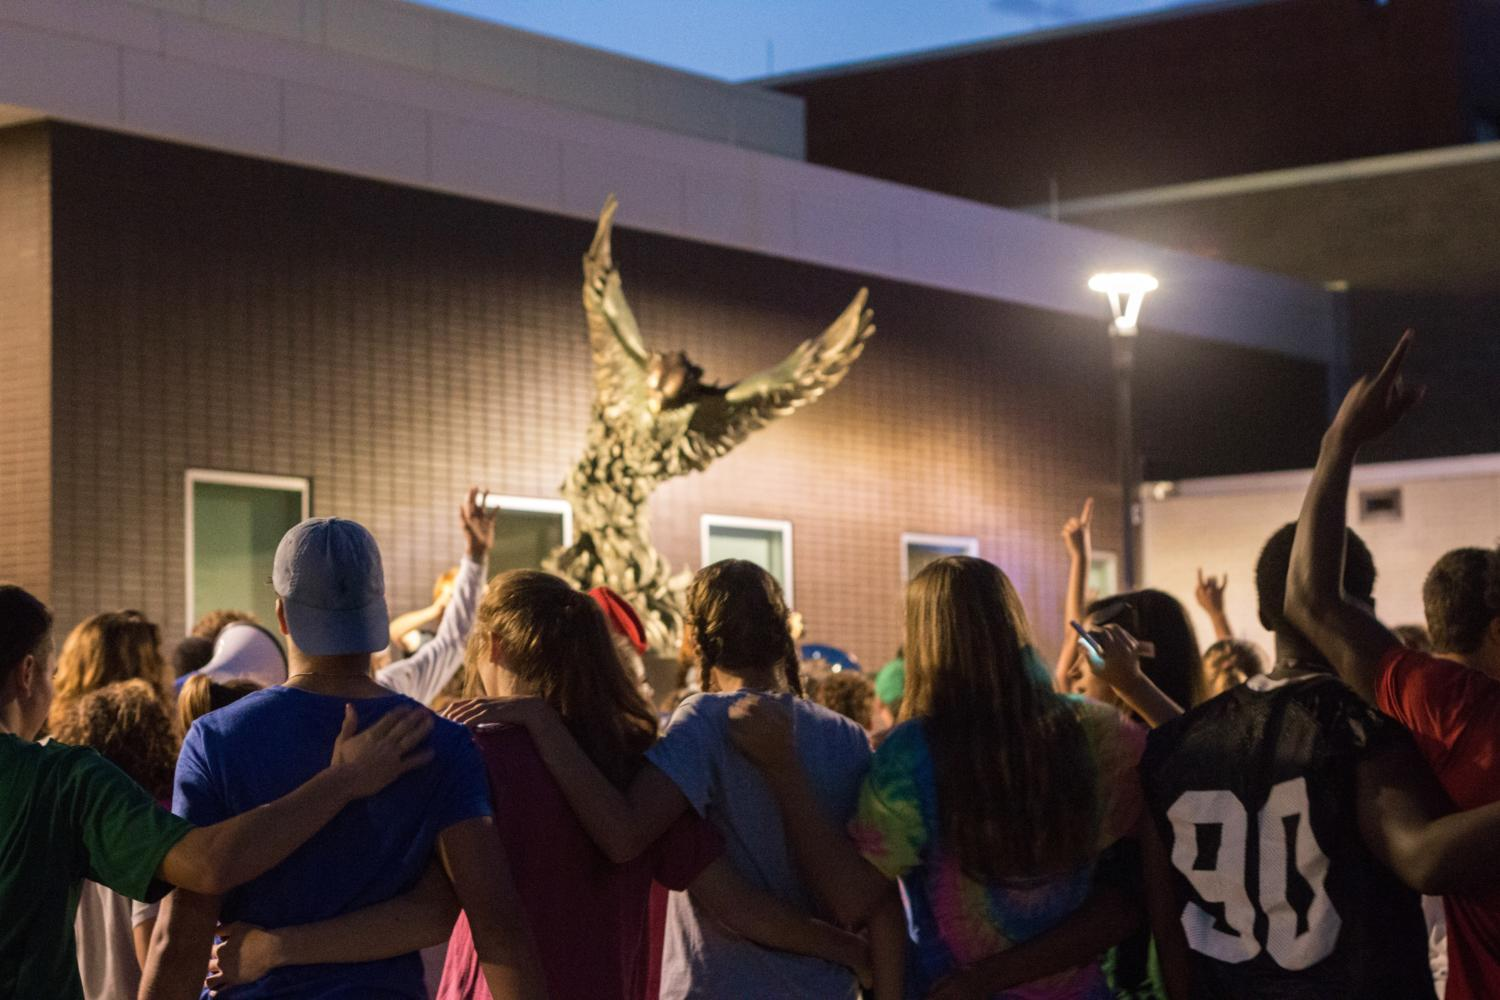 To conclude the parade a bonfire was held by the firebird statue. Students gathered around and sang the alma matter to celebrate Free States legacy.